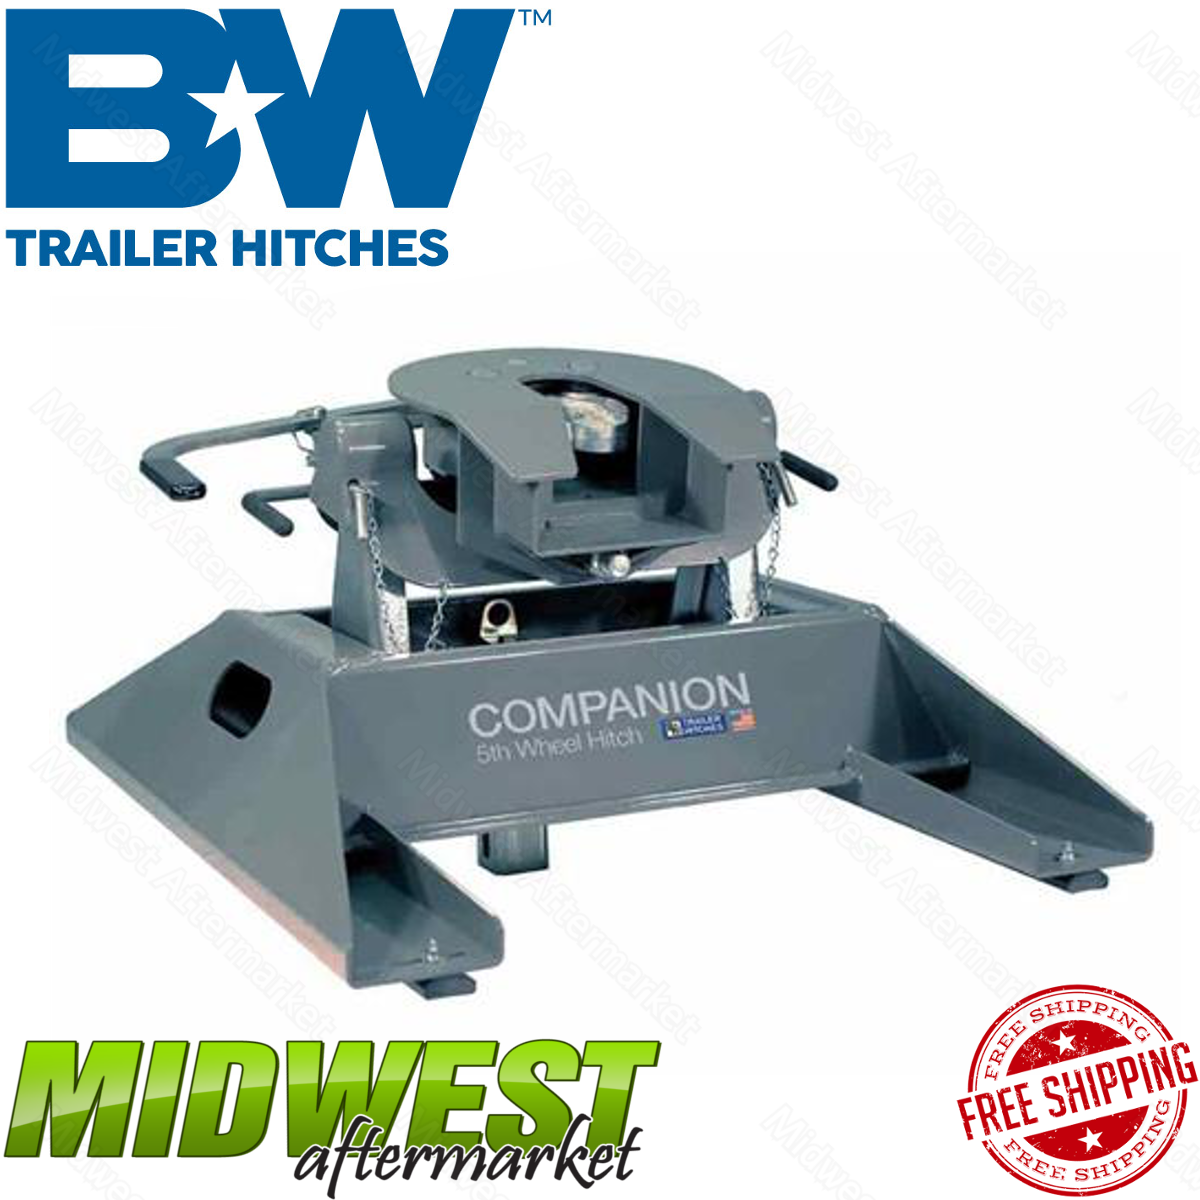 B&W Companion OEM 5th Wheel Hitch Fits 2012-2016 Ford F-250 F-350 Super Duty | eBay